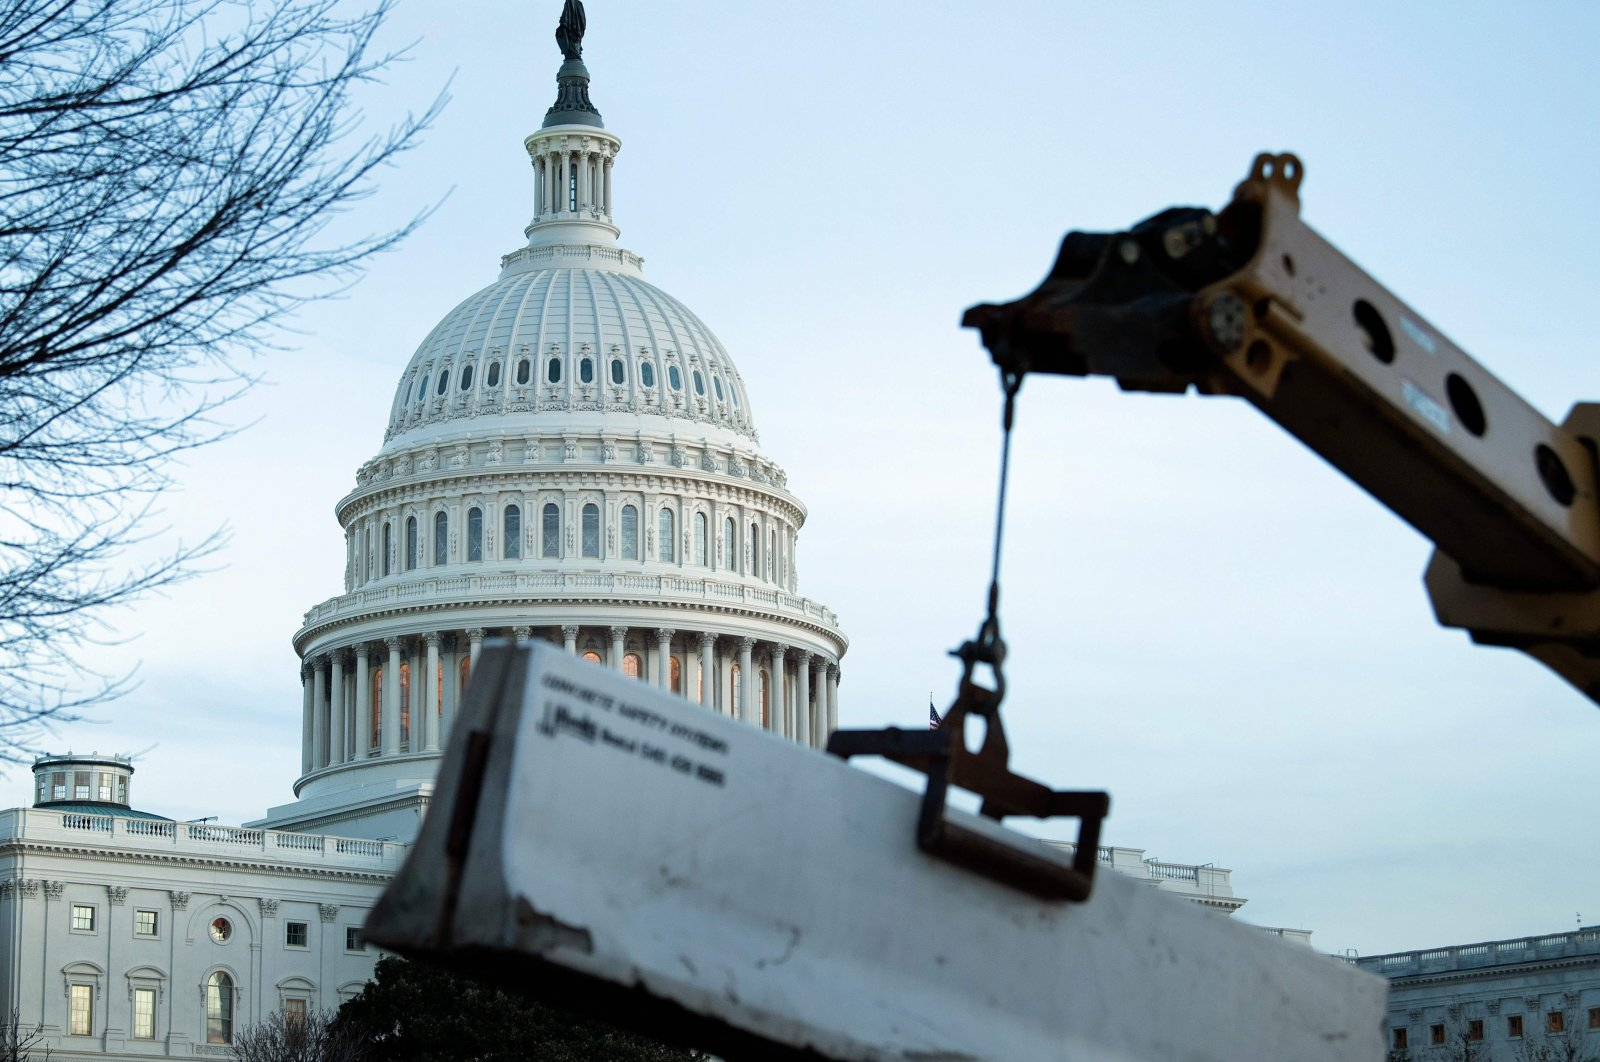 A crowd-control fence is reenforced with concrete barriers a day after pro-Donald Trump protesters broke into the U.S. Capitol, Washington, D.C., U.S., Jan. 7, 2021. (AFP Photo)